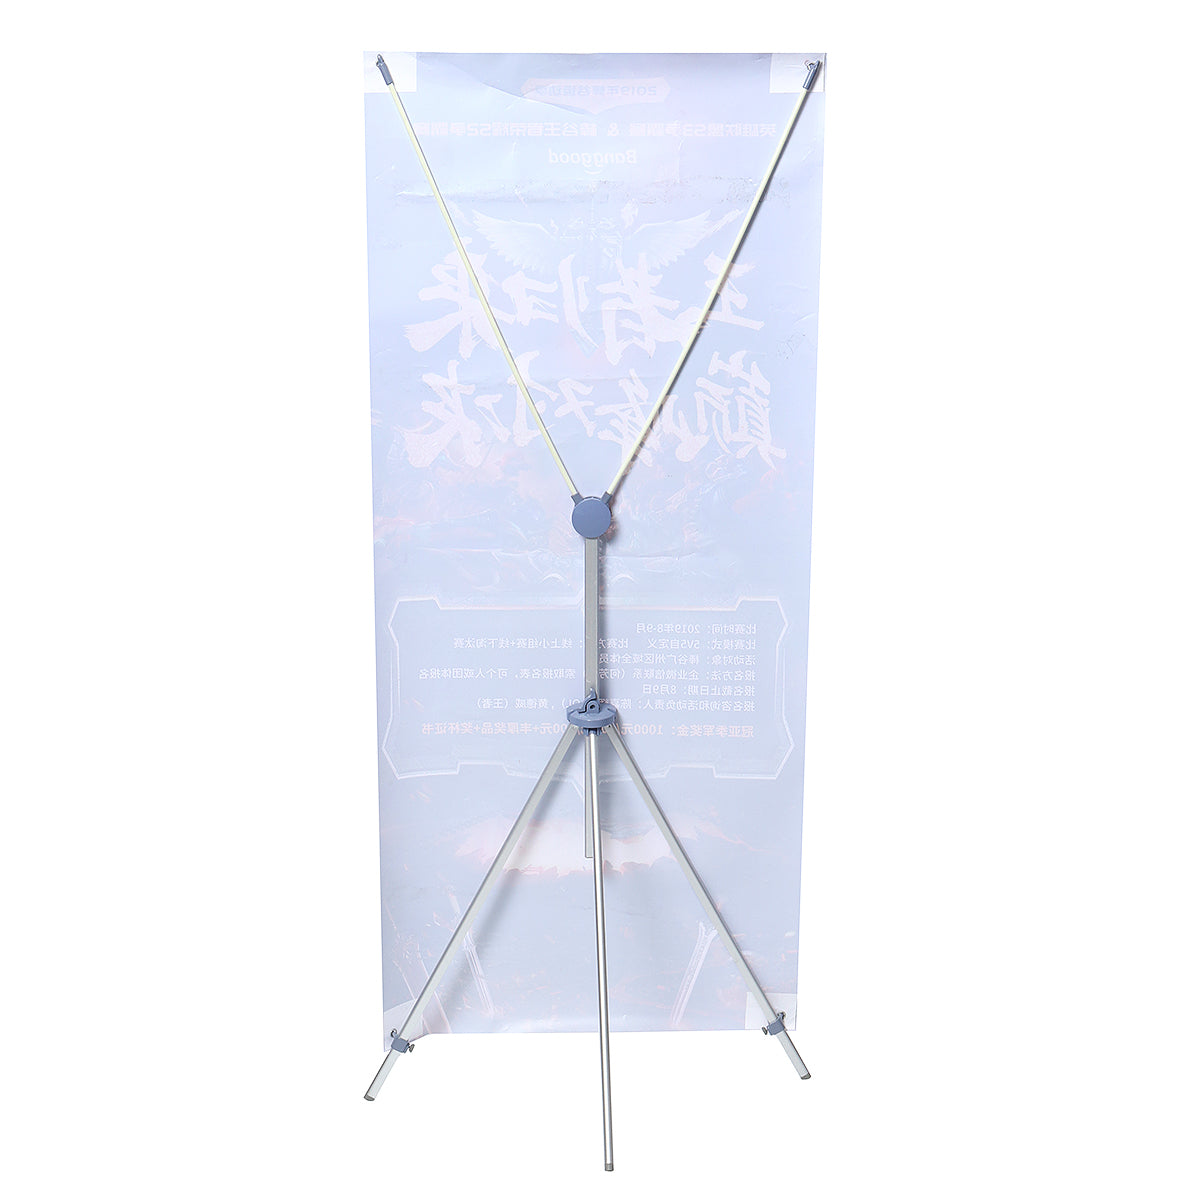 X Display Rack Hanging Easel Display Paint Rack Aluminum Alloy X Wedding Display Rack X Poster Rack Event Display Rack